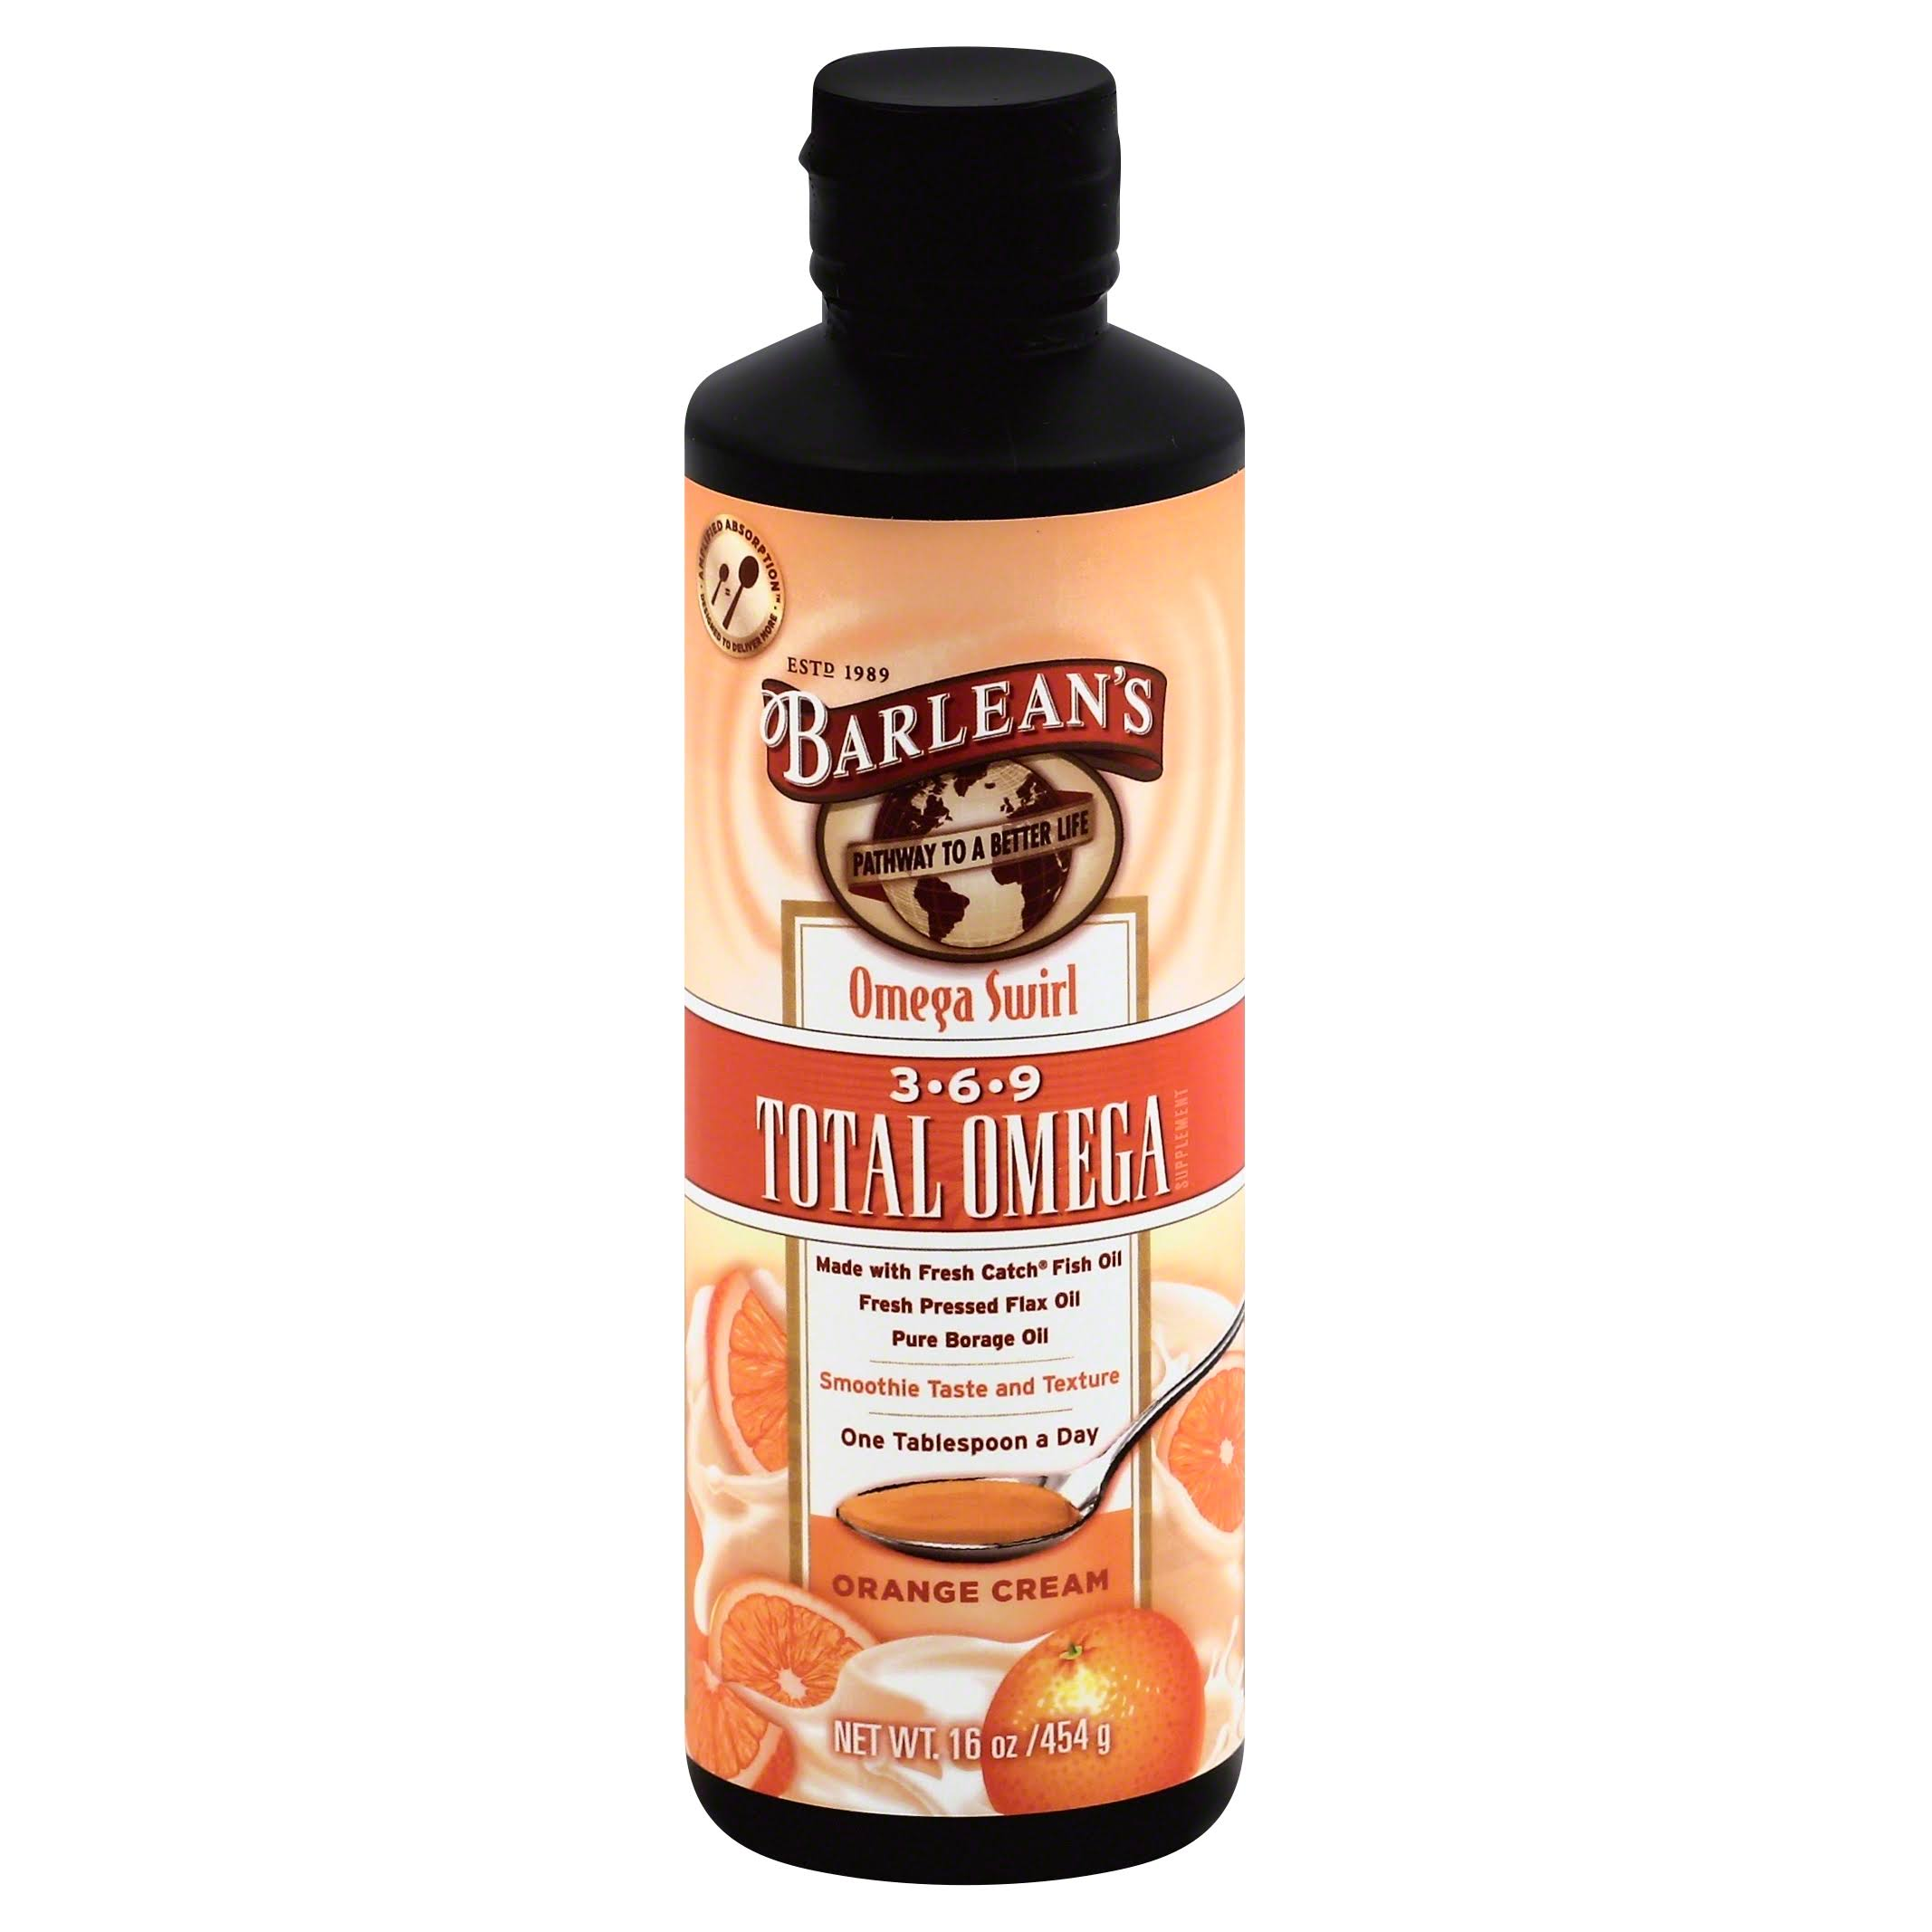 Barlean's Orange Cream Total Omega Swirl - 16 Oz